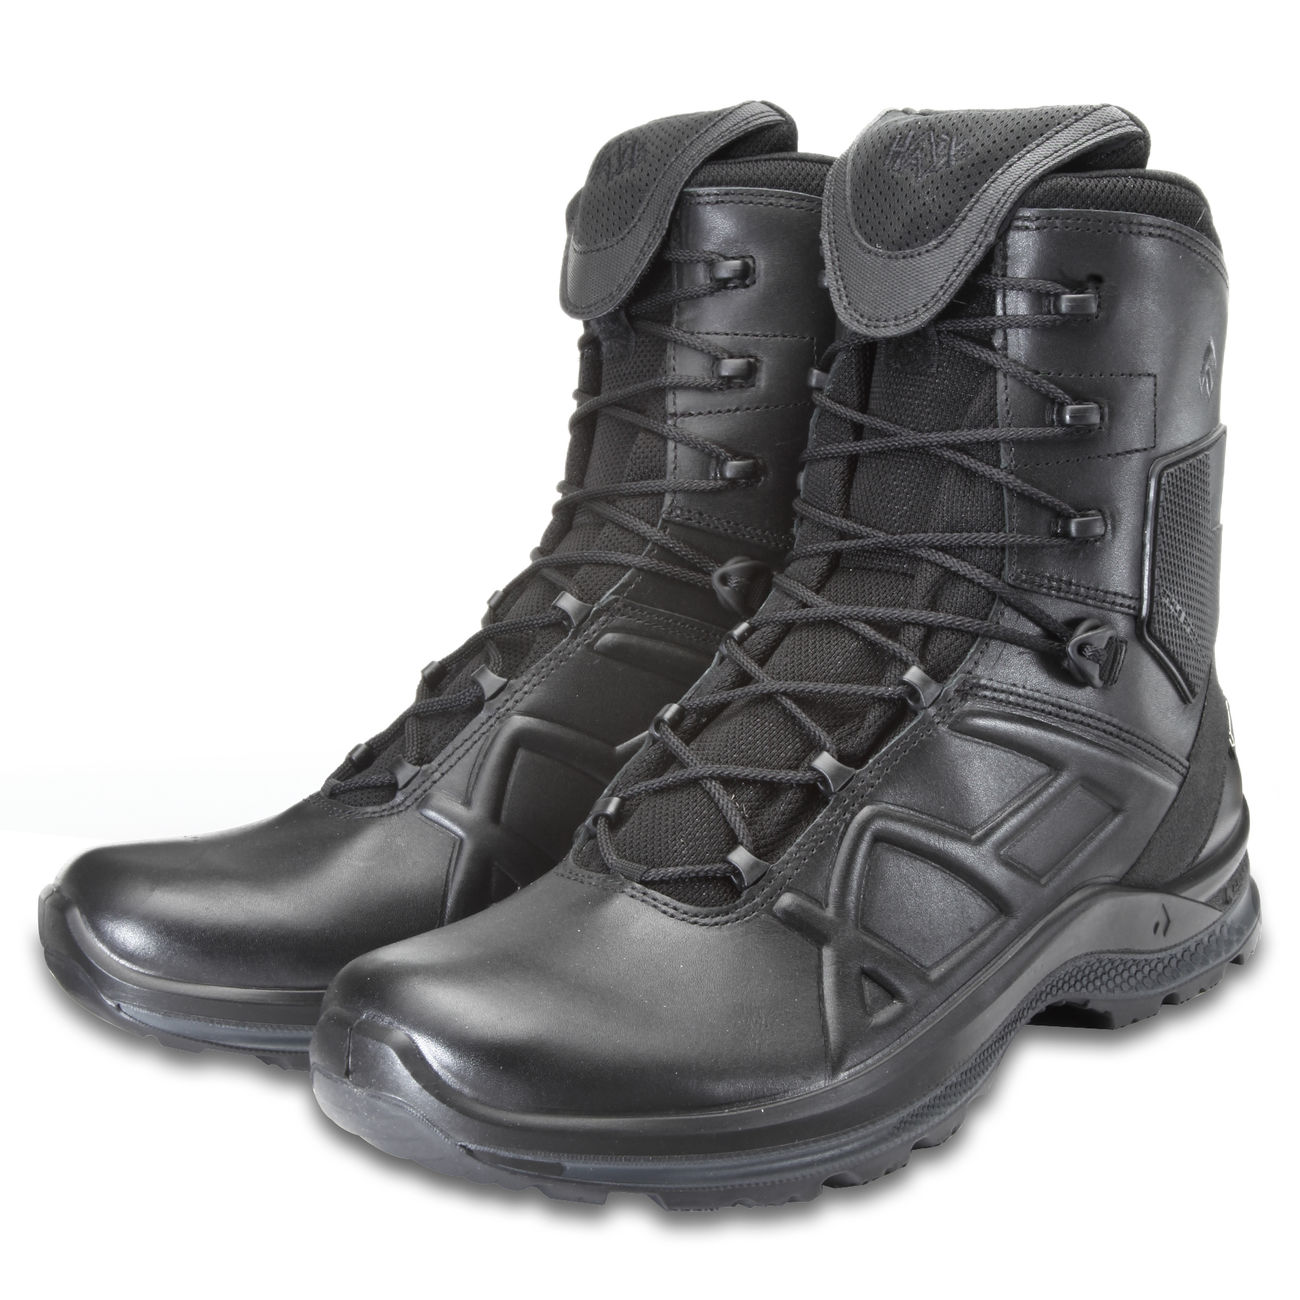 Haix Stiefel Black Eagle Tactical 2.0 High schwarz 2